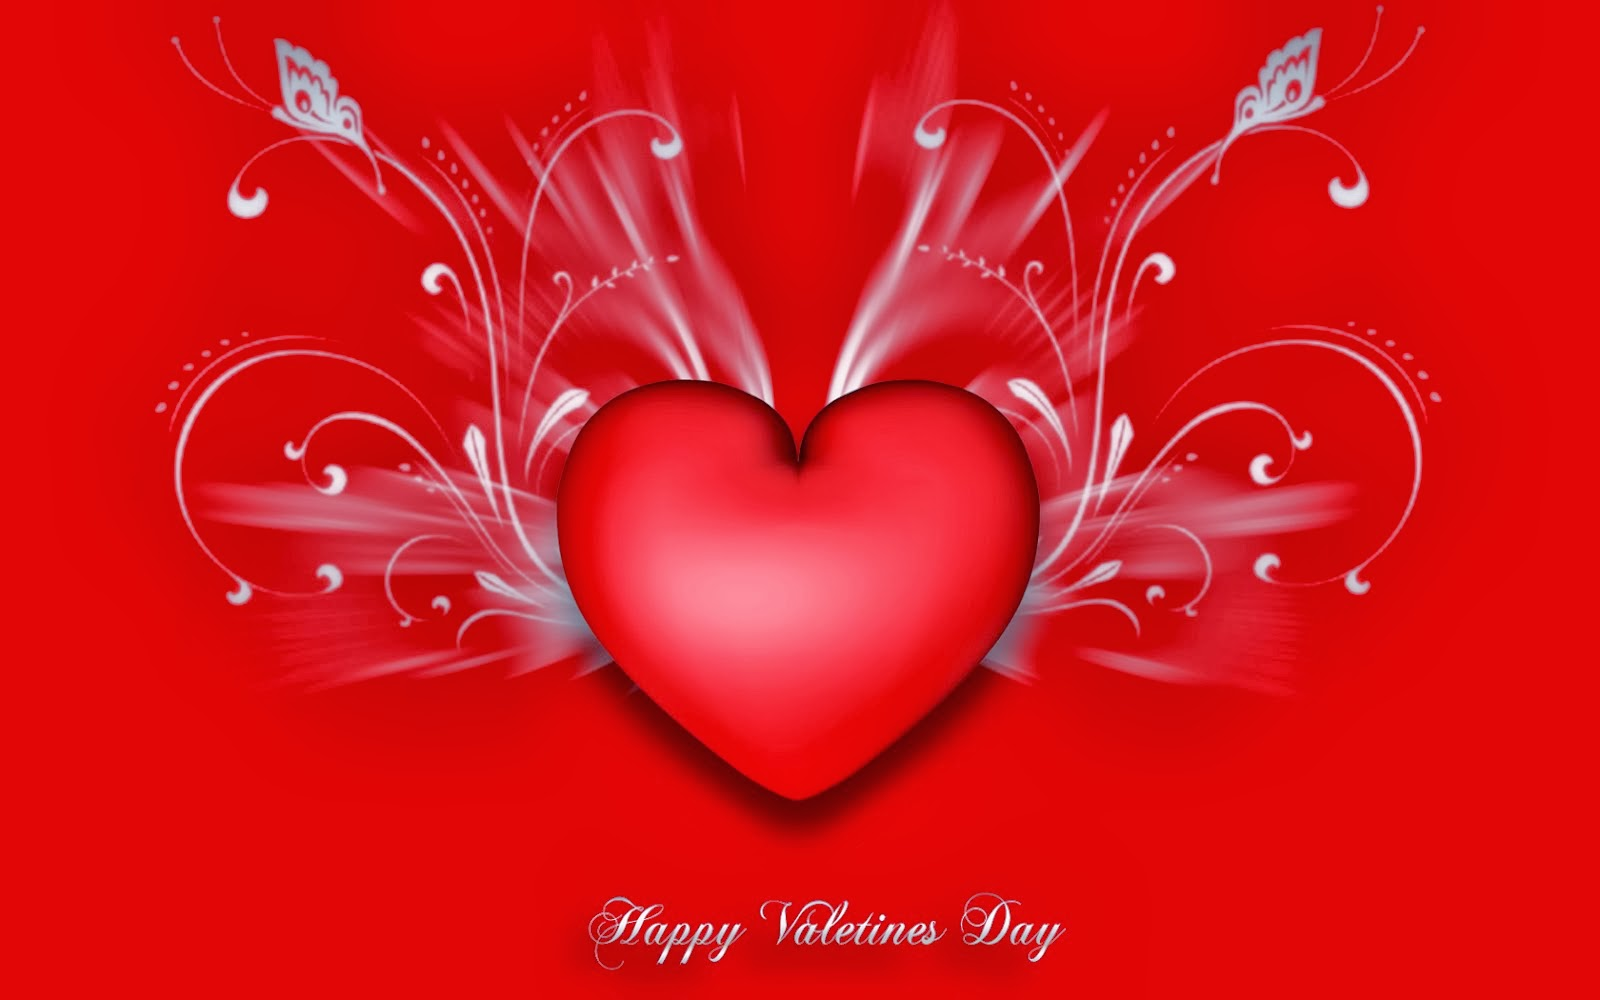 Valentine Day Wallpapers Desktop Background Photos Free